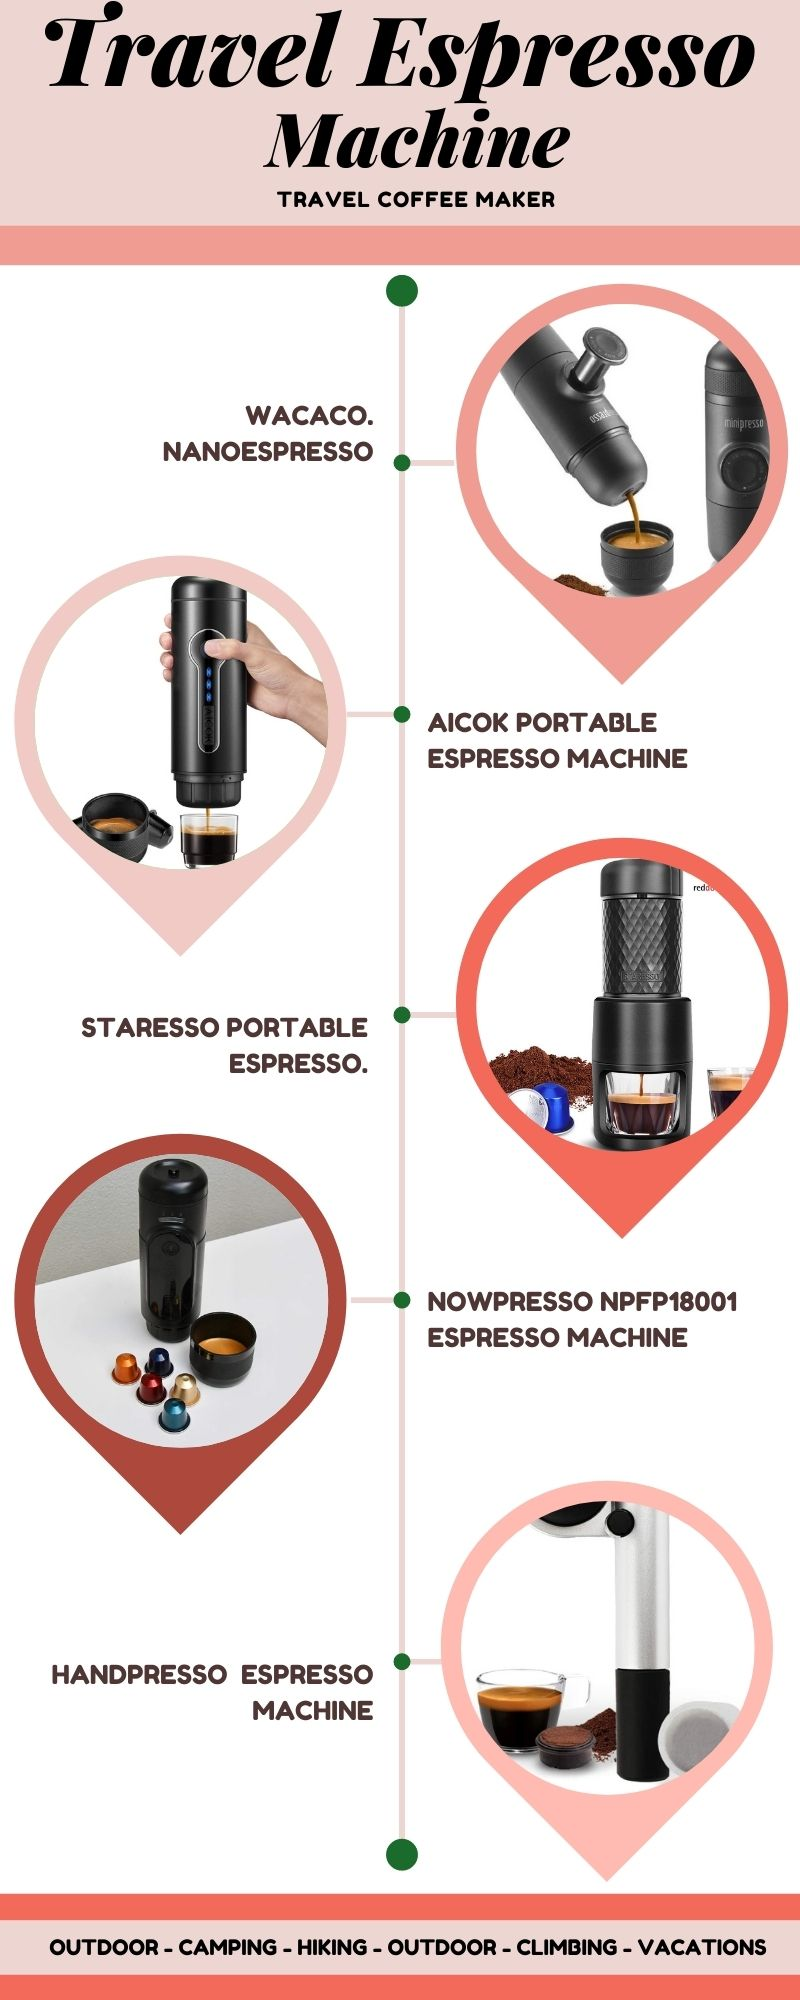 Travel #Nespresso Coffee Machine for #Vacations The Nespresso 3Coffee Machine does not look like a travel coffee maker. For trekking or hiking of course not. But for a trip in a motor home it is ideal for several reasons: